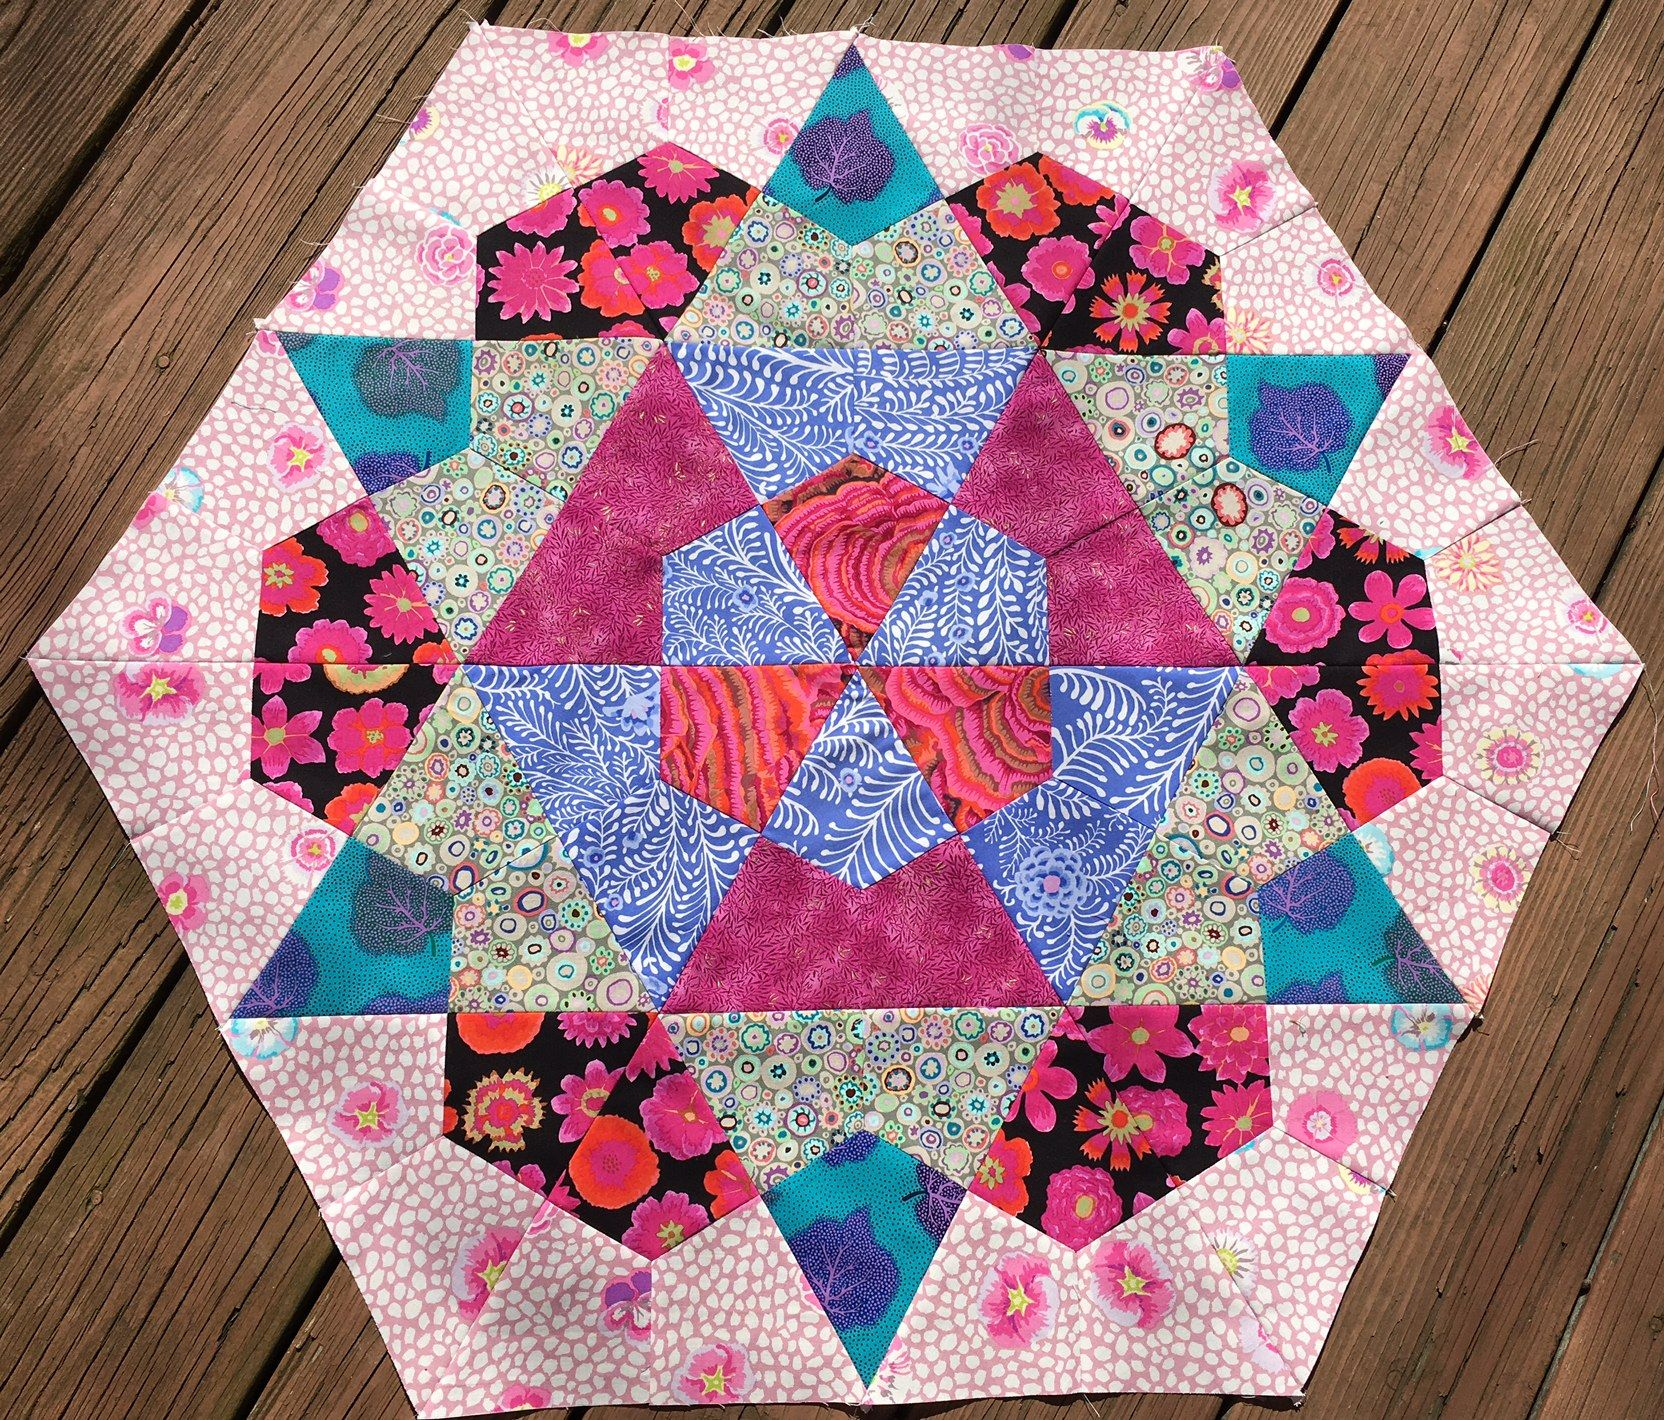 Vintage Rose Star Pattern Updated With Today S Kaffe Fassett Fabrics 72 Kite Shaped Patches And A Lot Of Y Seams Kaffe Fassett Fabric Quilts Star Quilts